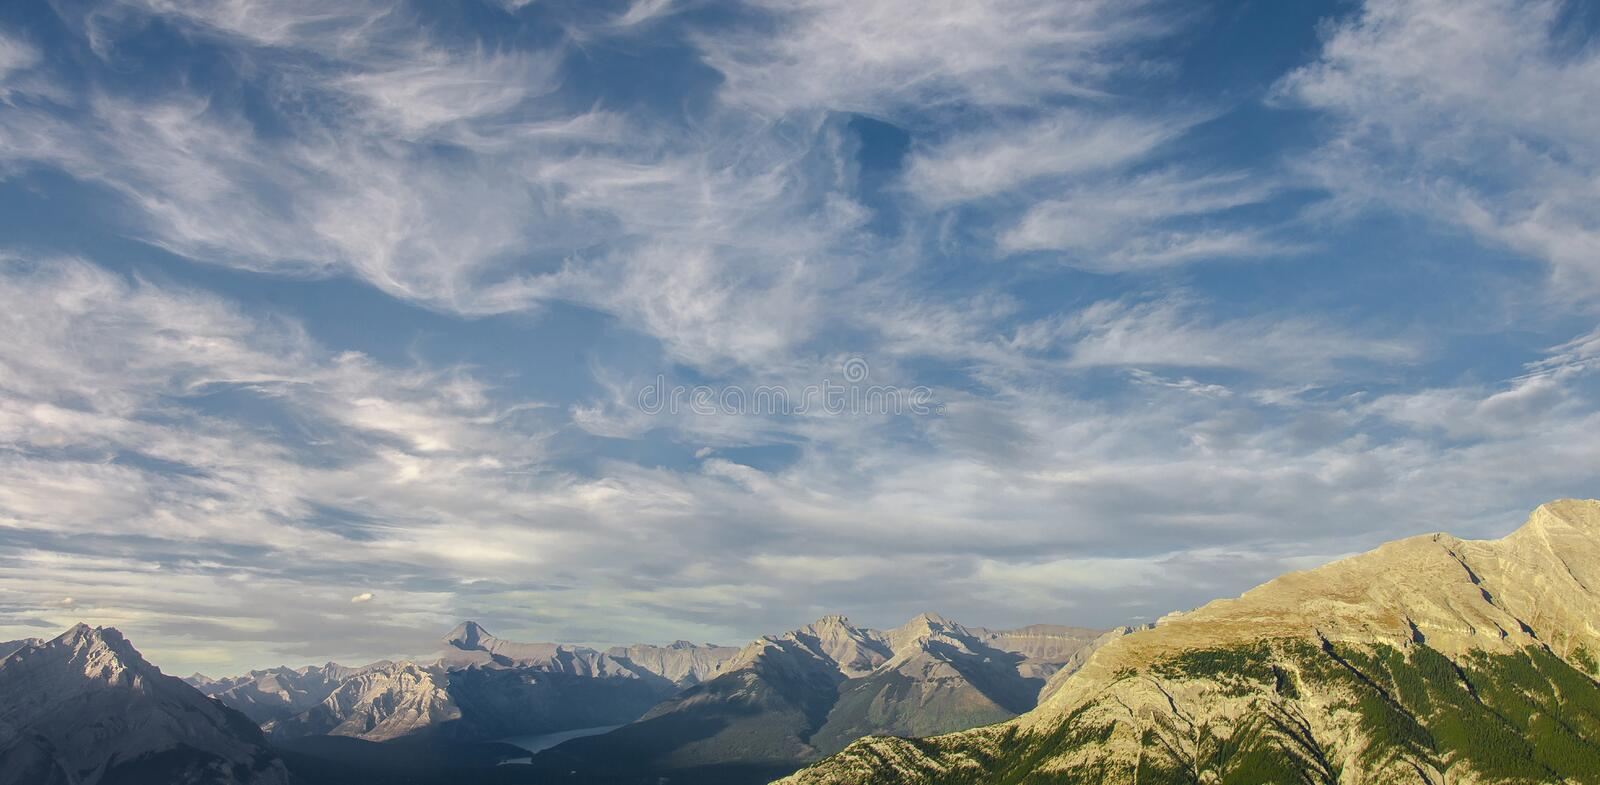 Shot of never ending mountain range next to the Banff Gondola was taken during my first trip to the Canadian Rockies shortly stock photo